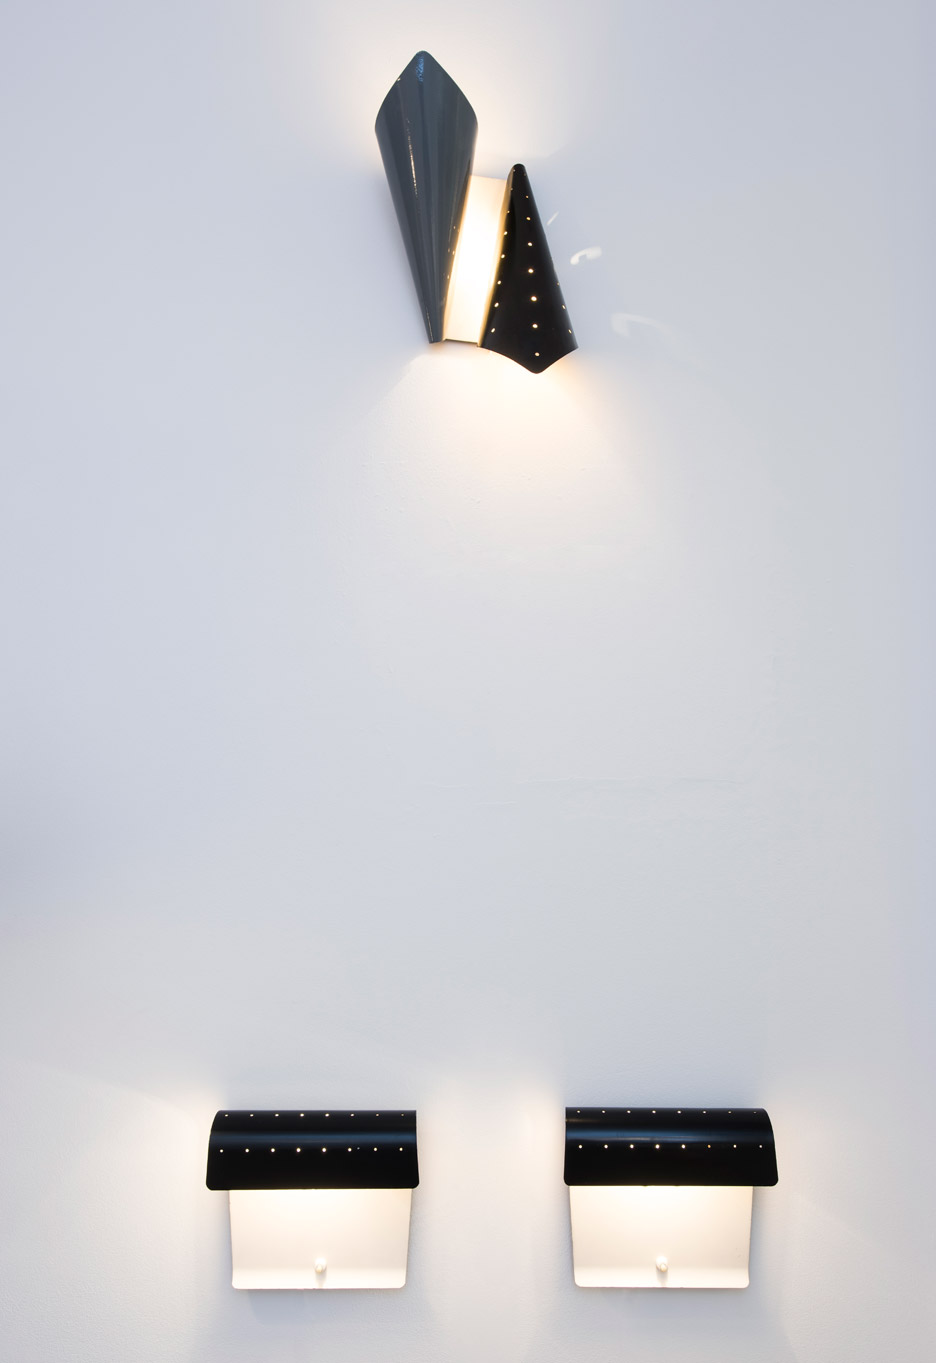 englightened-50s-exhibition-galerie-kreo-jacques biny 193 wall light_dezeen_936_0